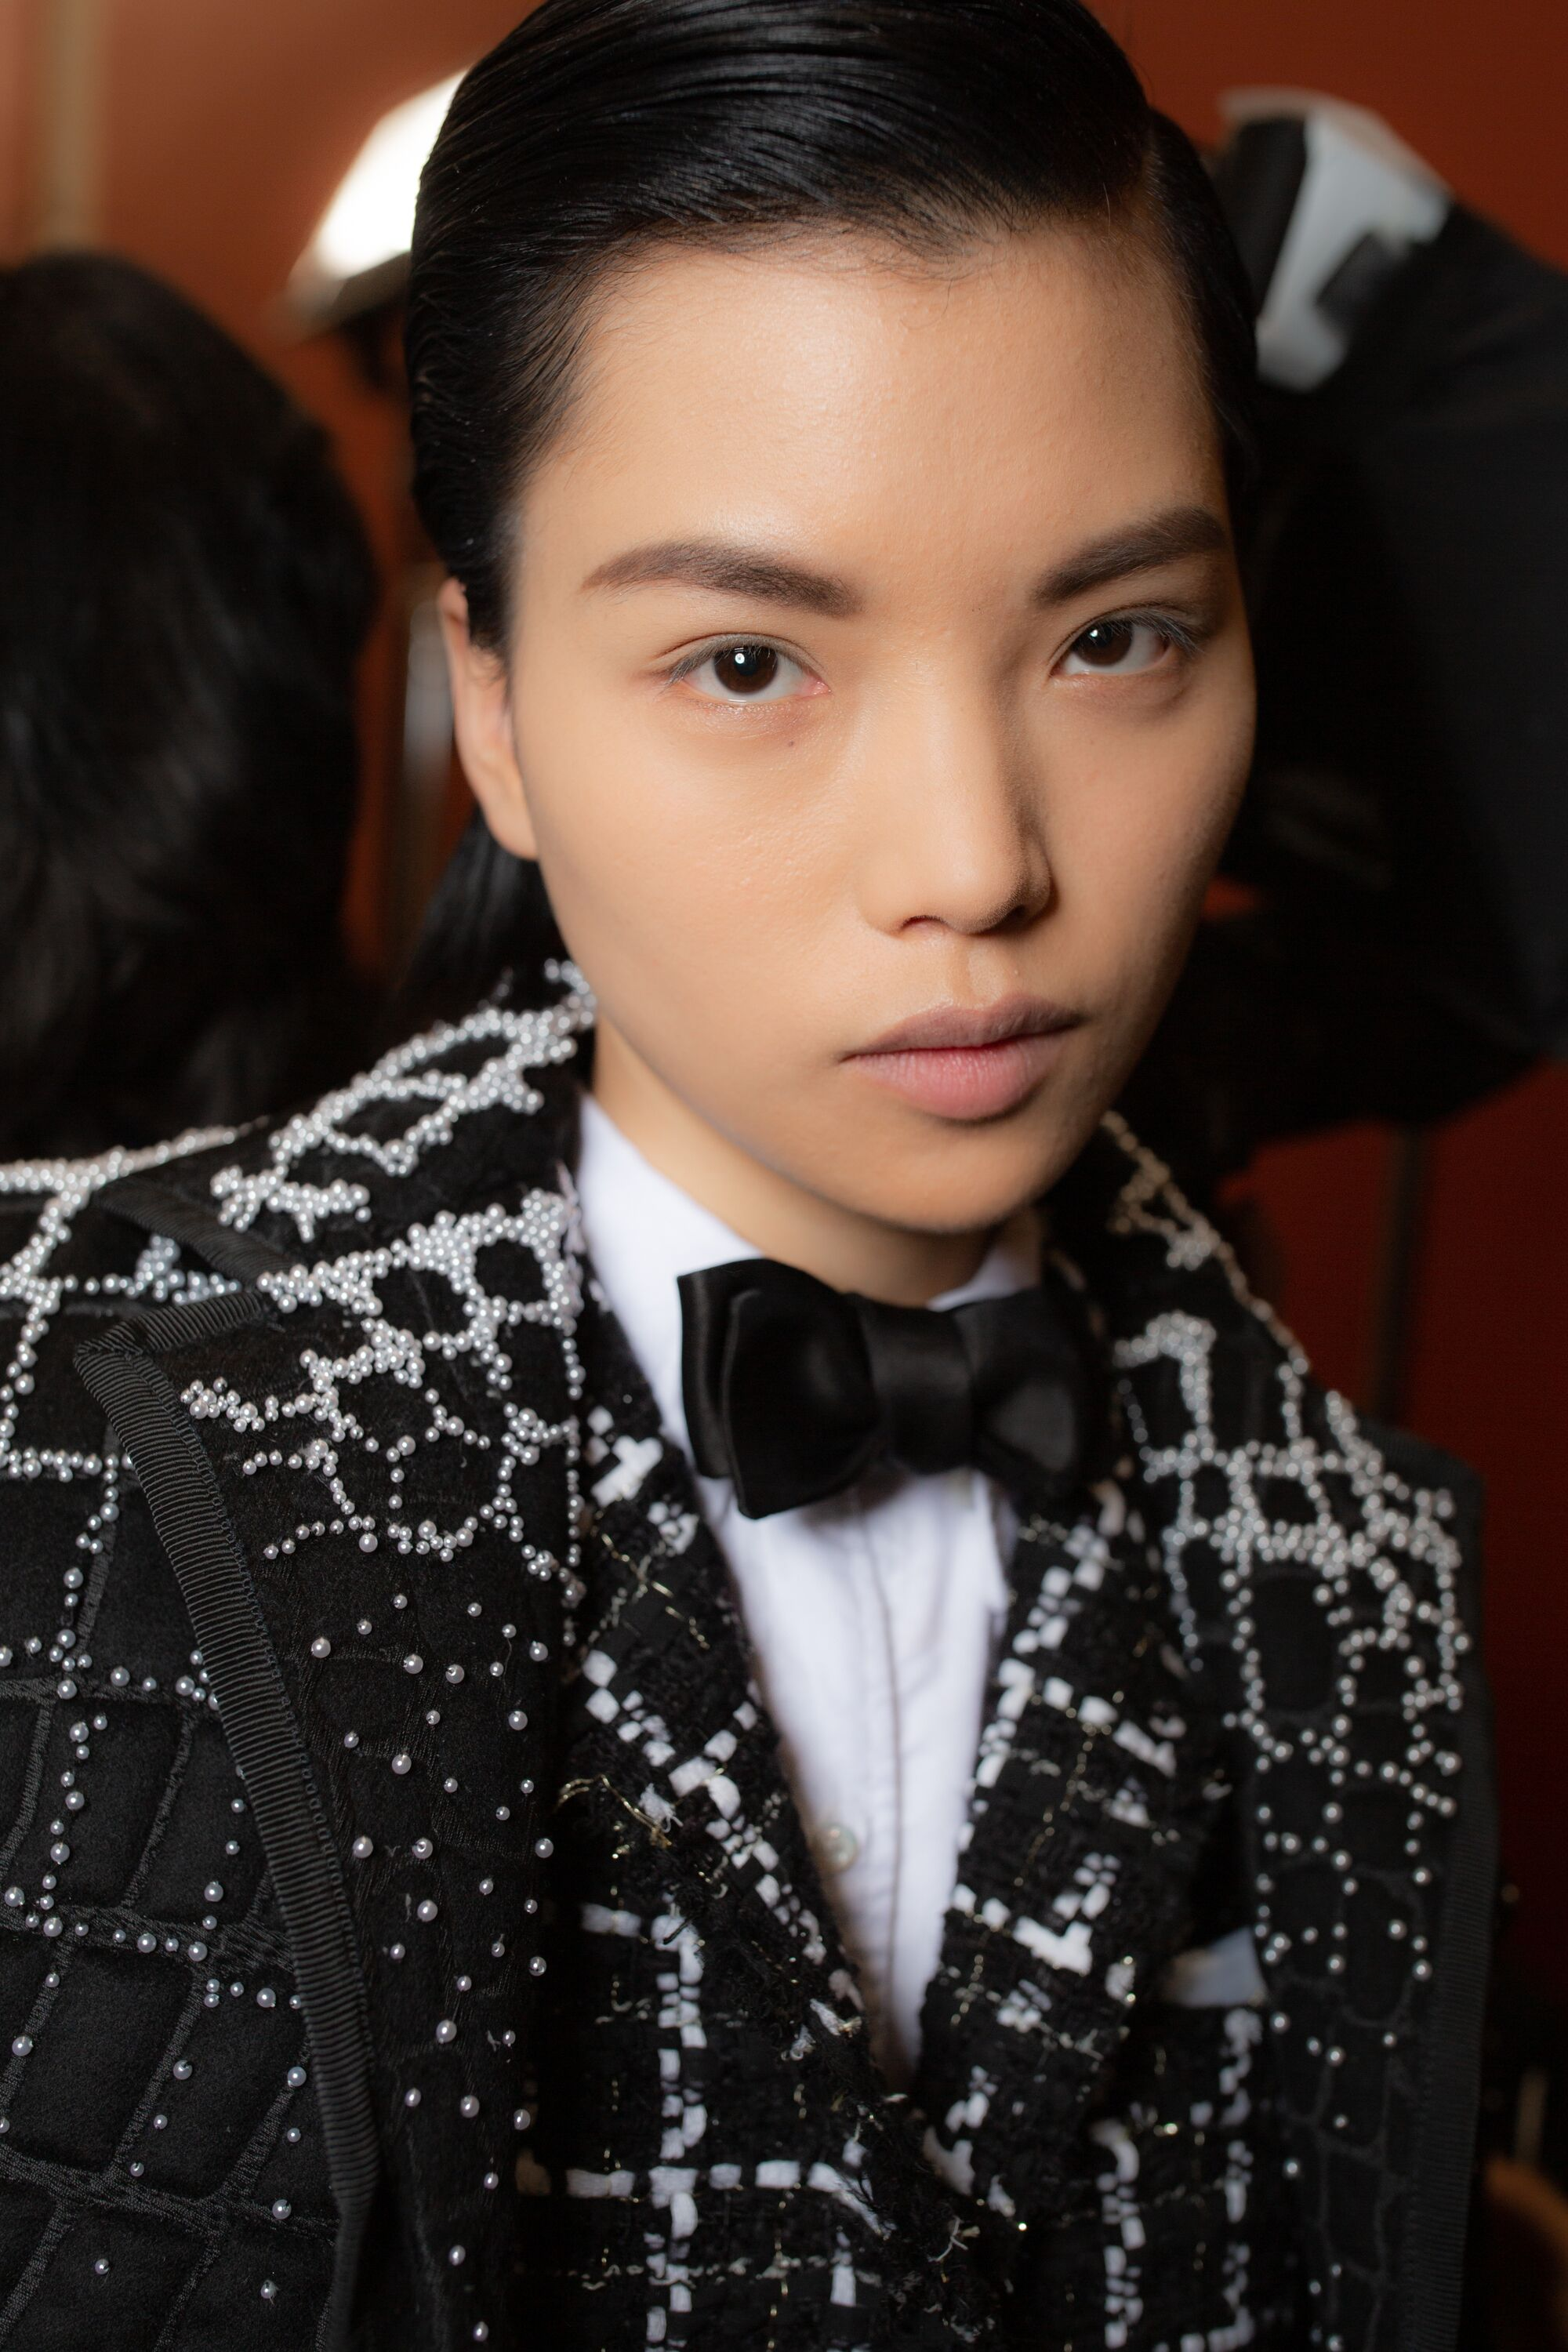 Thom Browne embellished tailored coat bow tie aw19